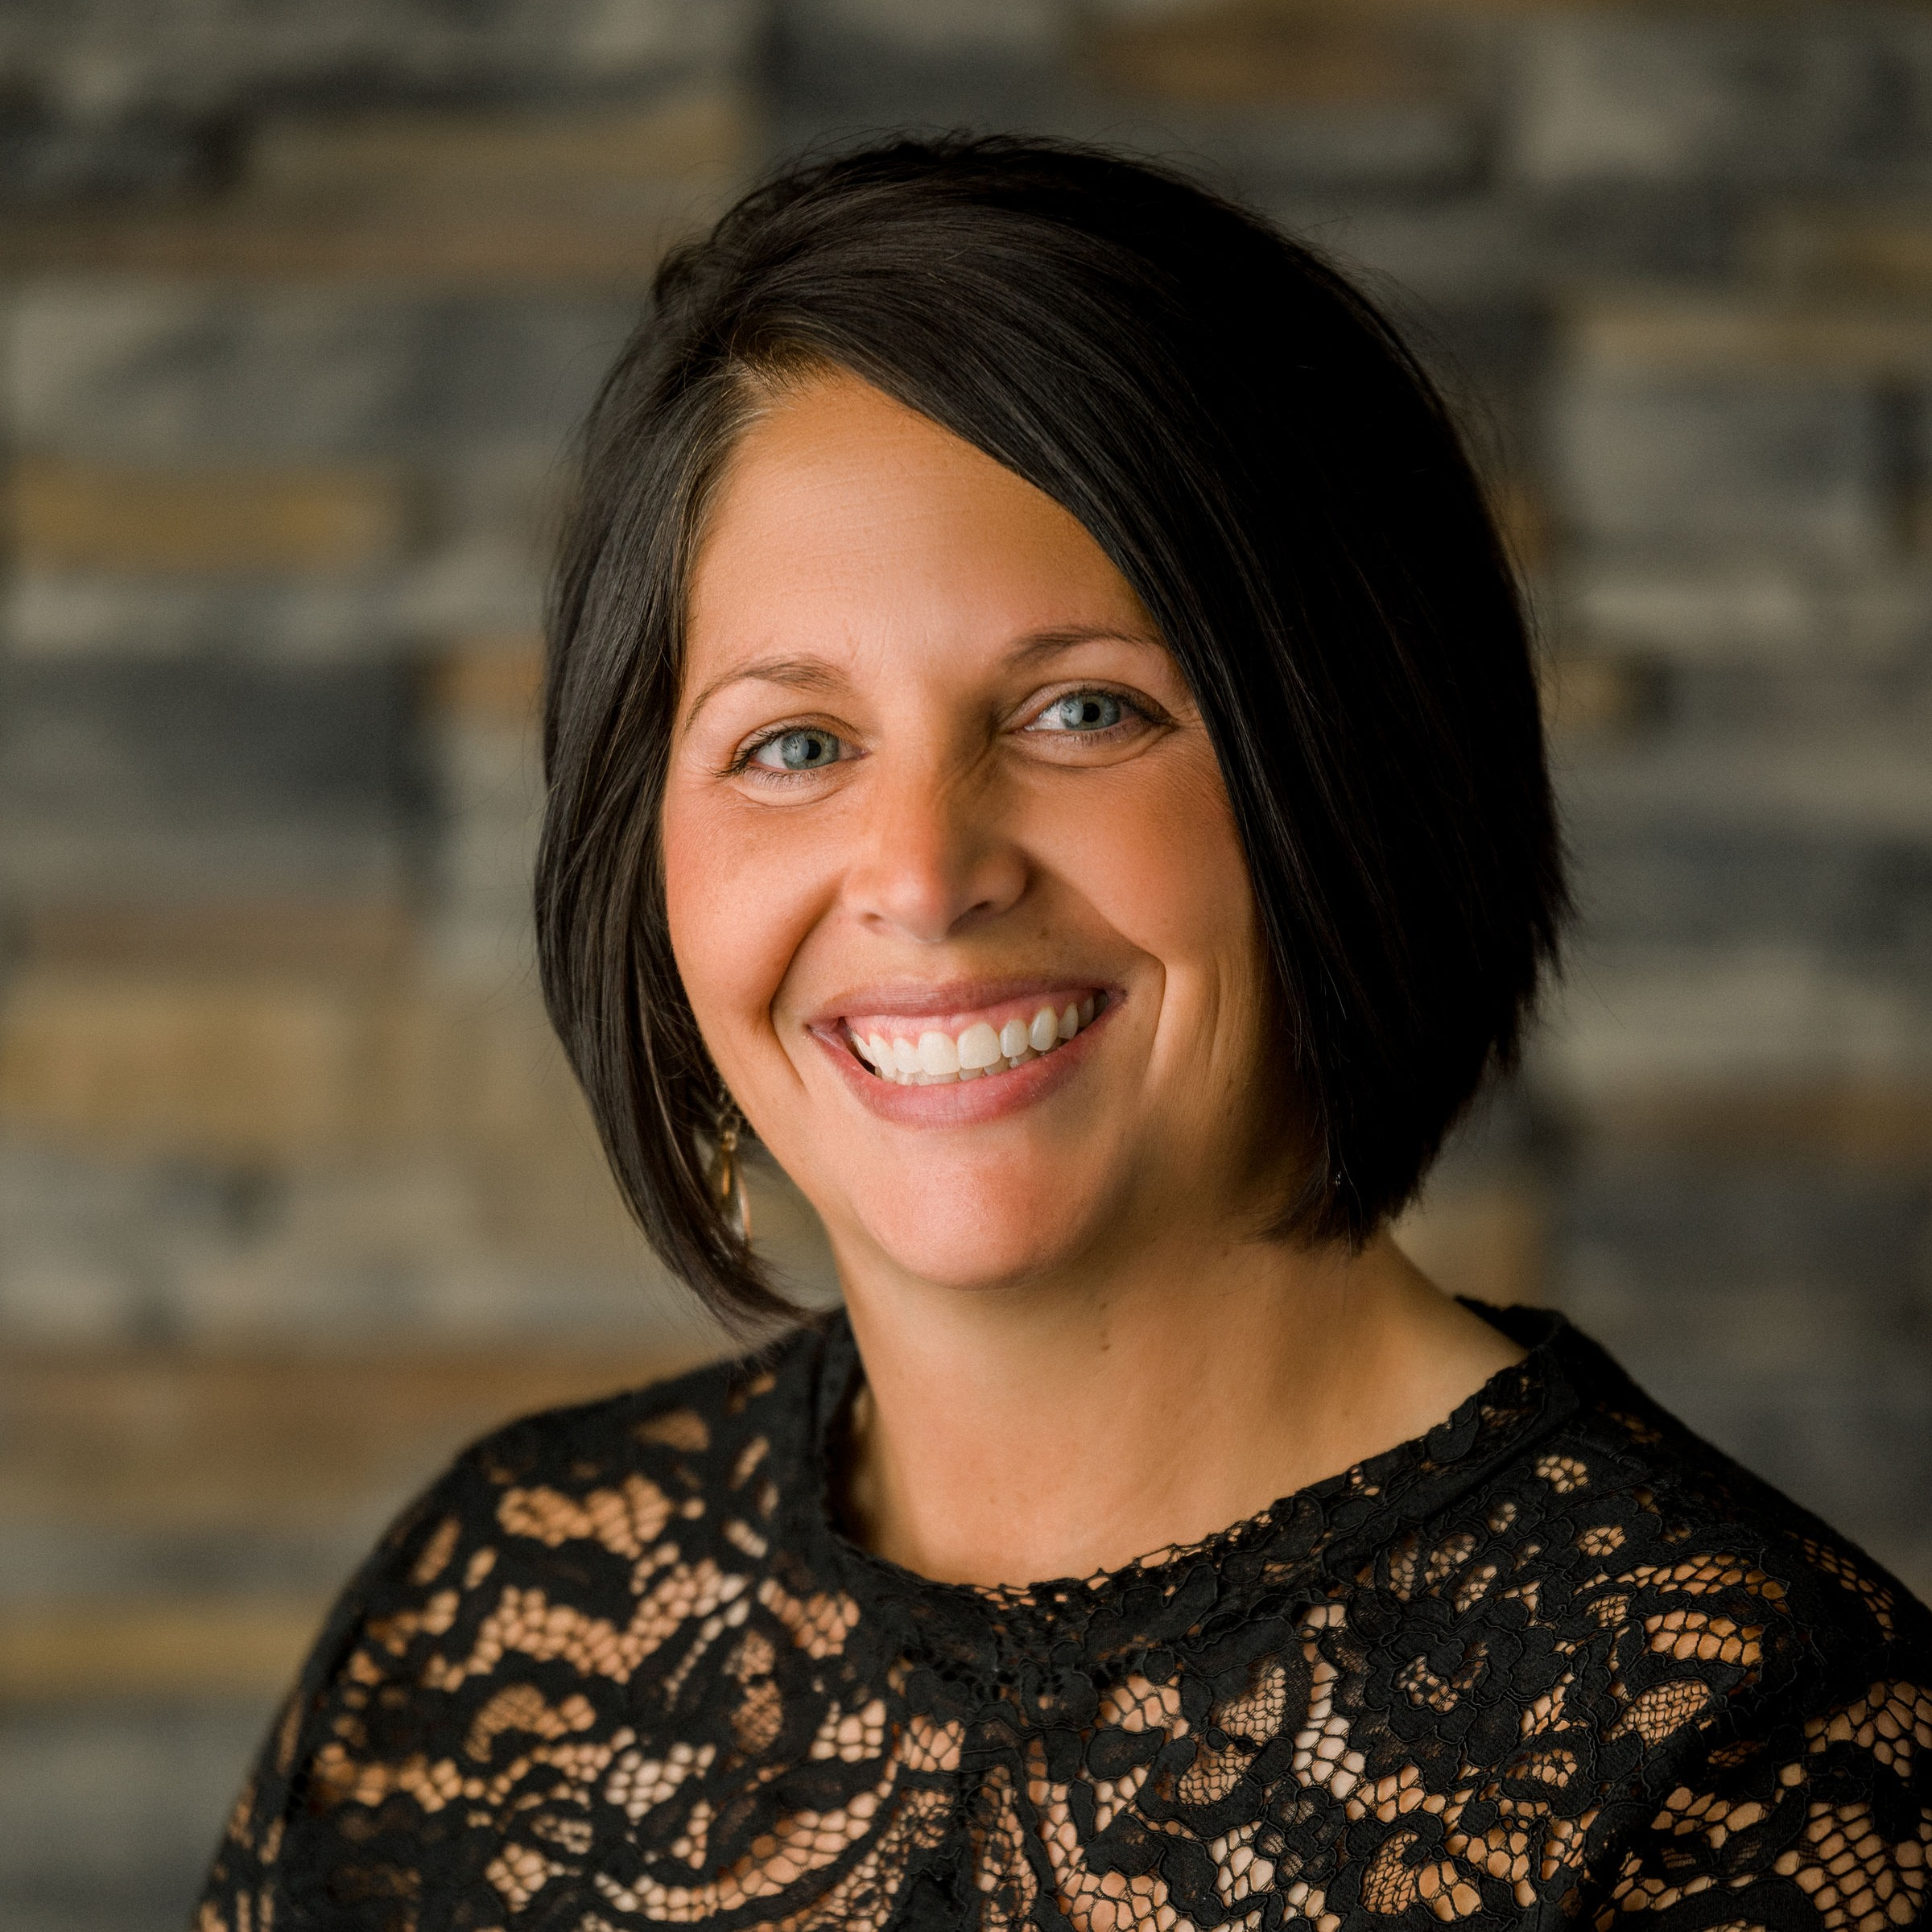 Dawn A. of Orthodontic Specialty Services